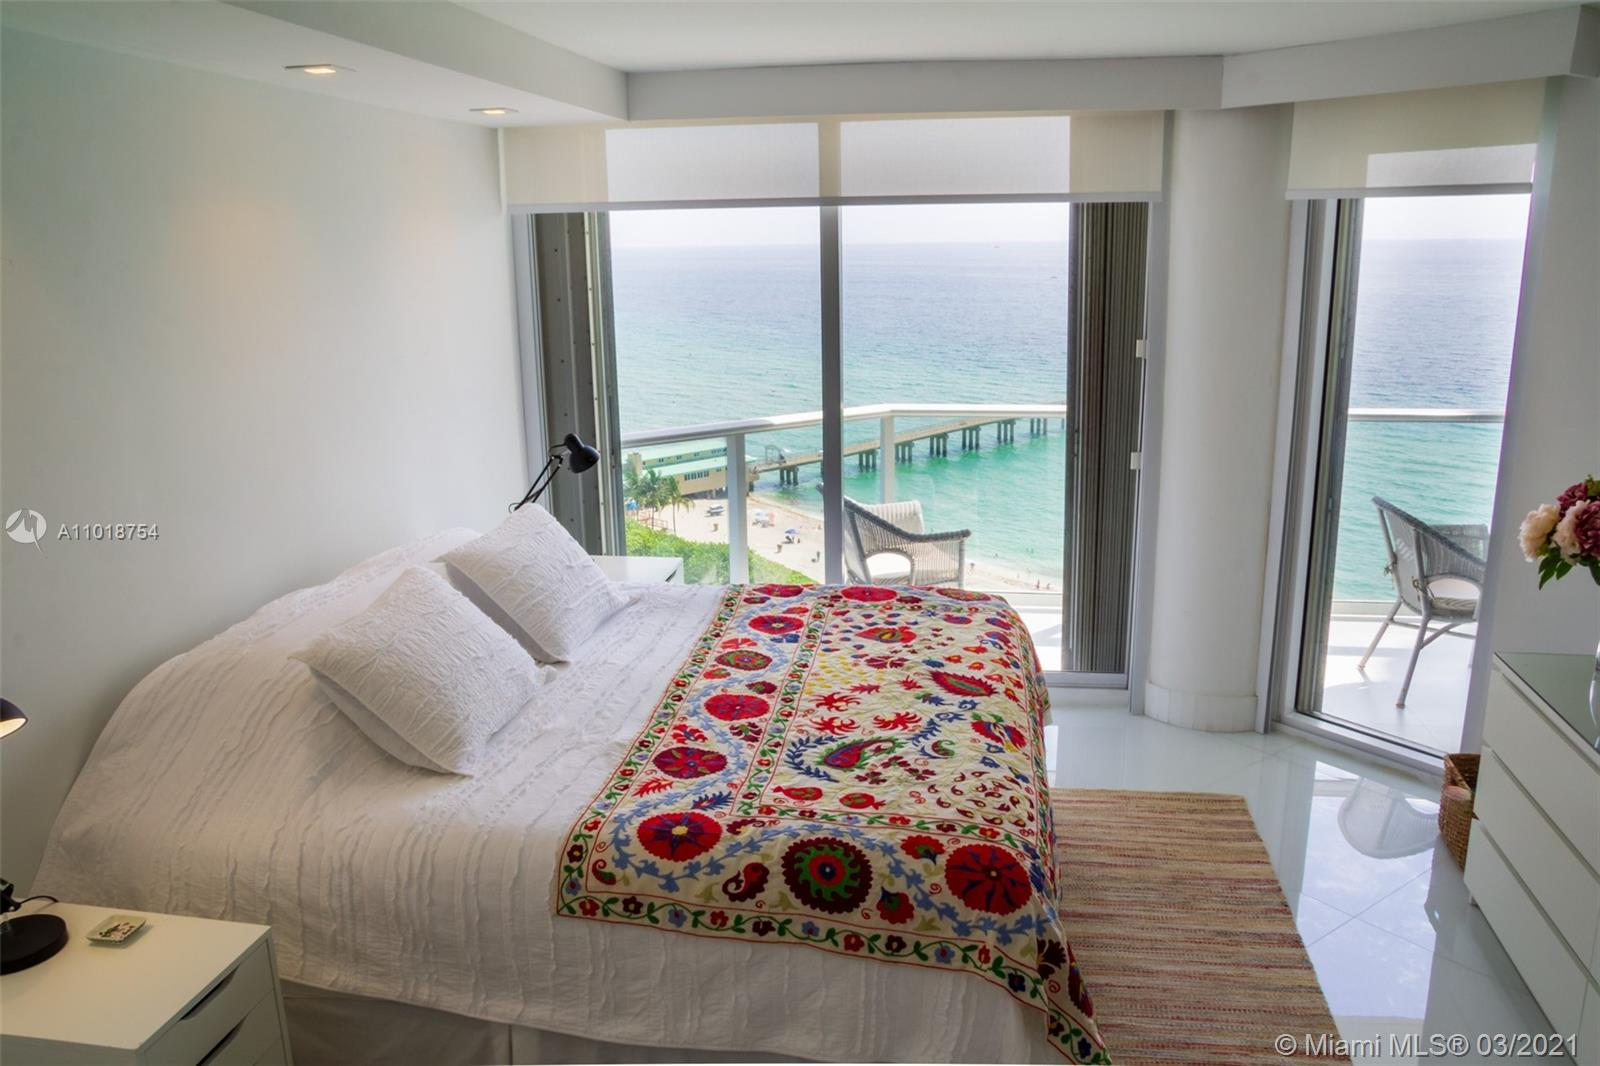 Oceania Two #1525 - 16445 Collins Ave #1525, Sunny Isles Beach, FL 33160